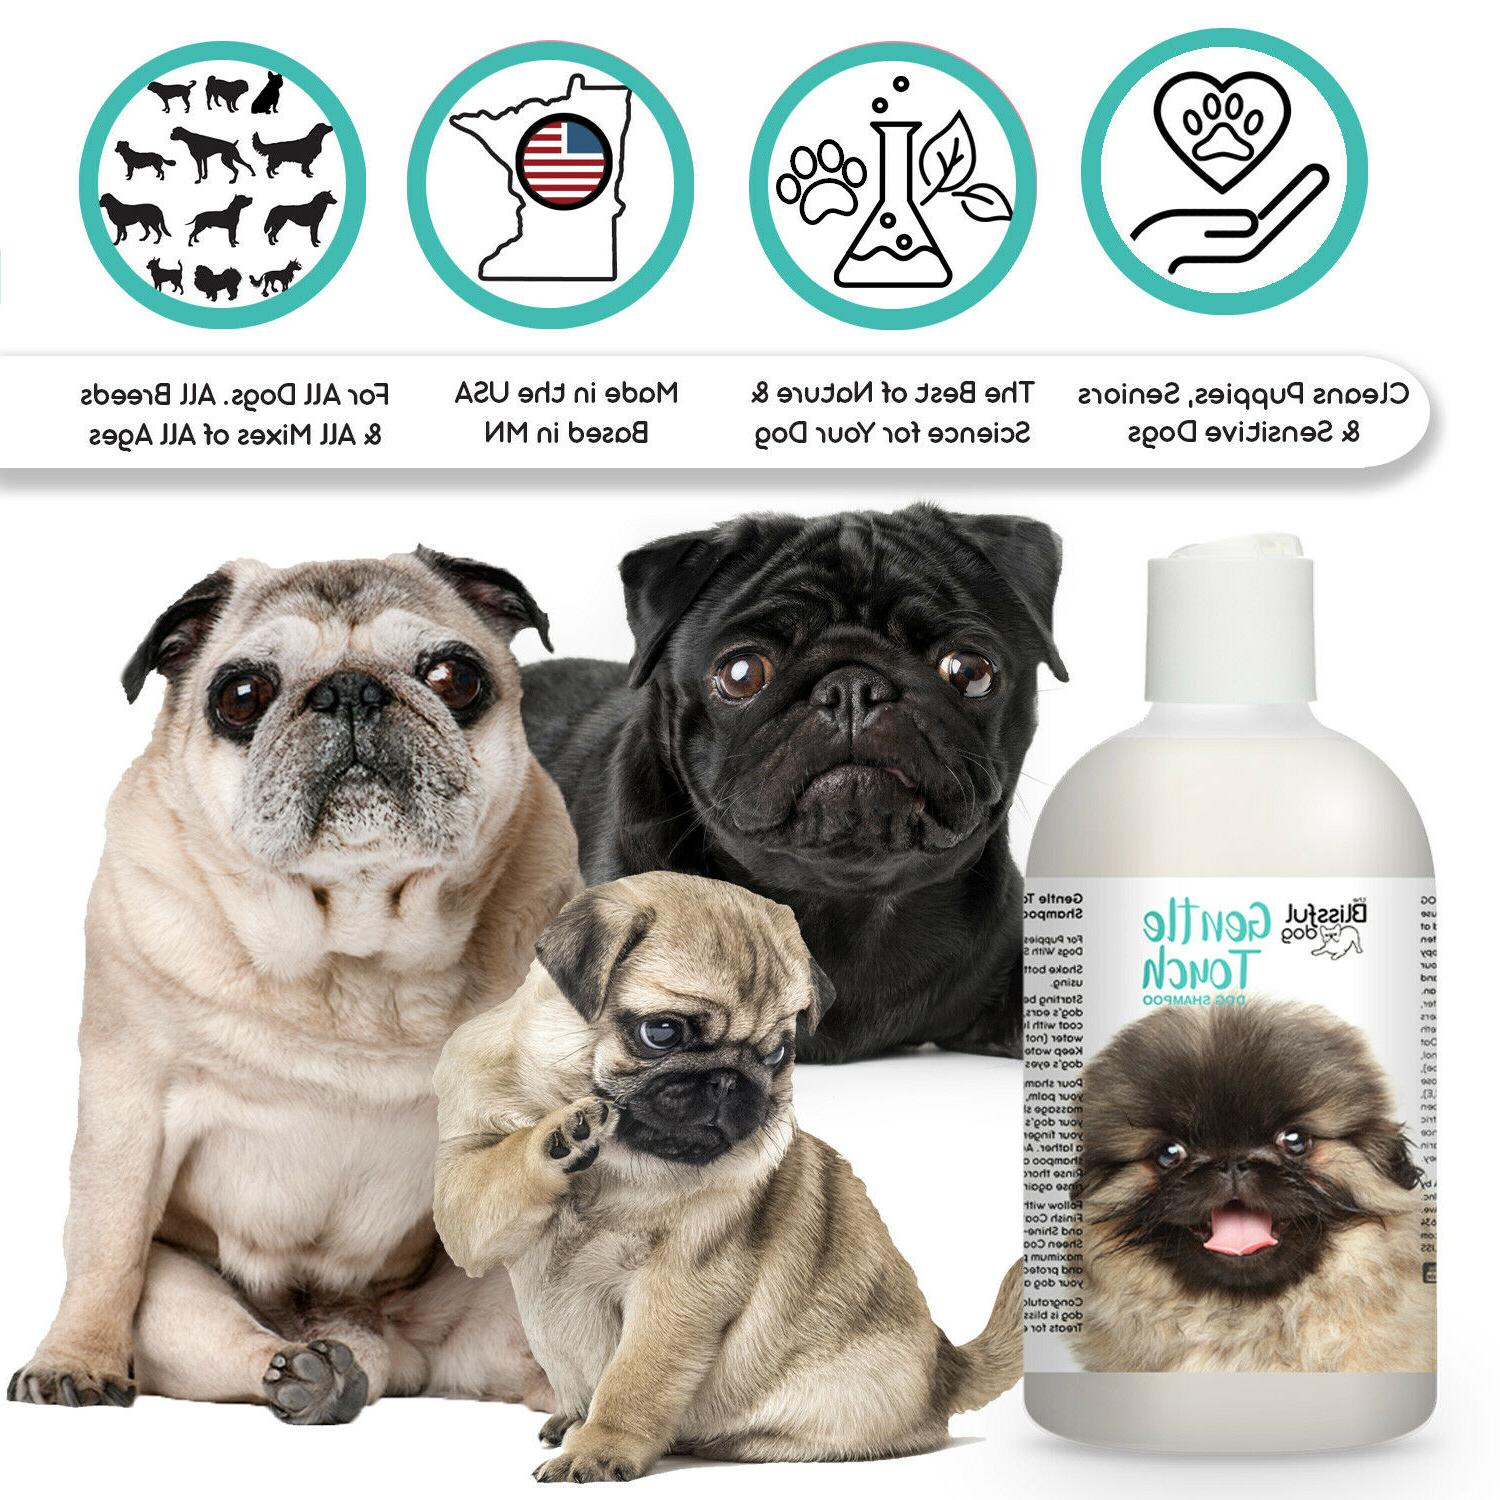 gentle touch dog shampoo for your puppy